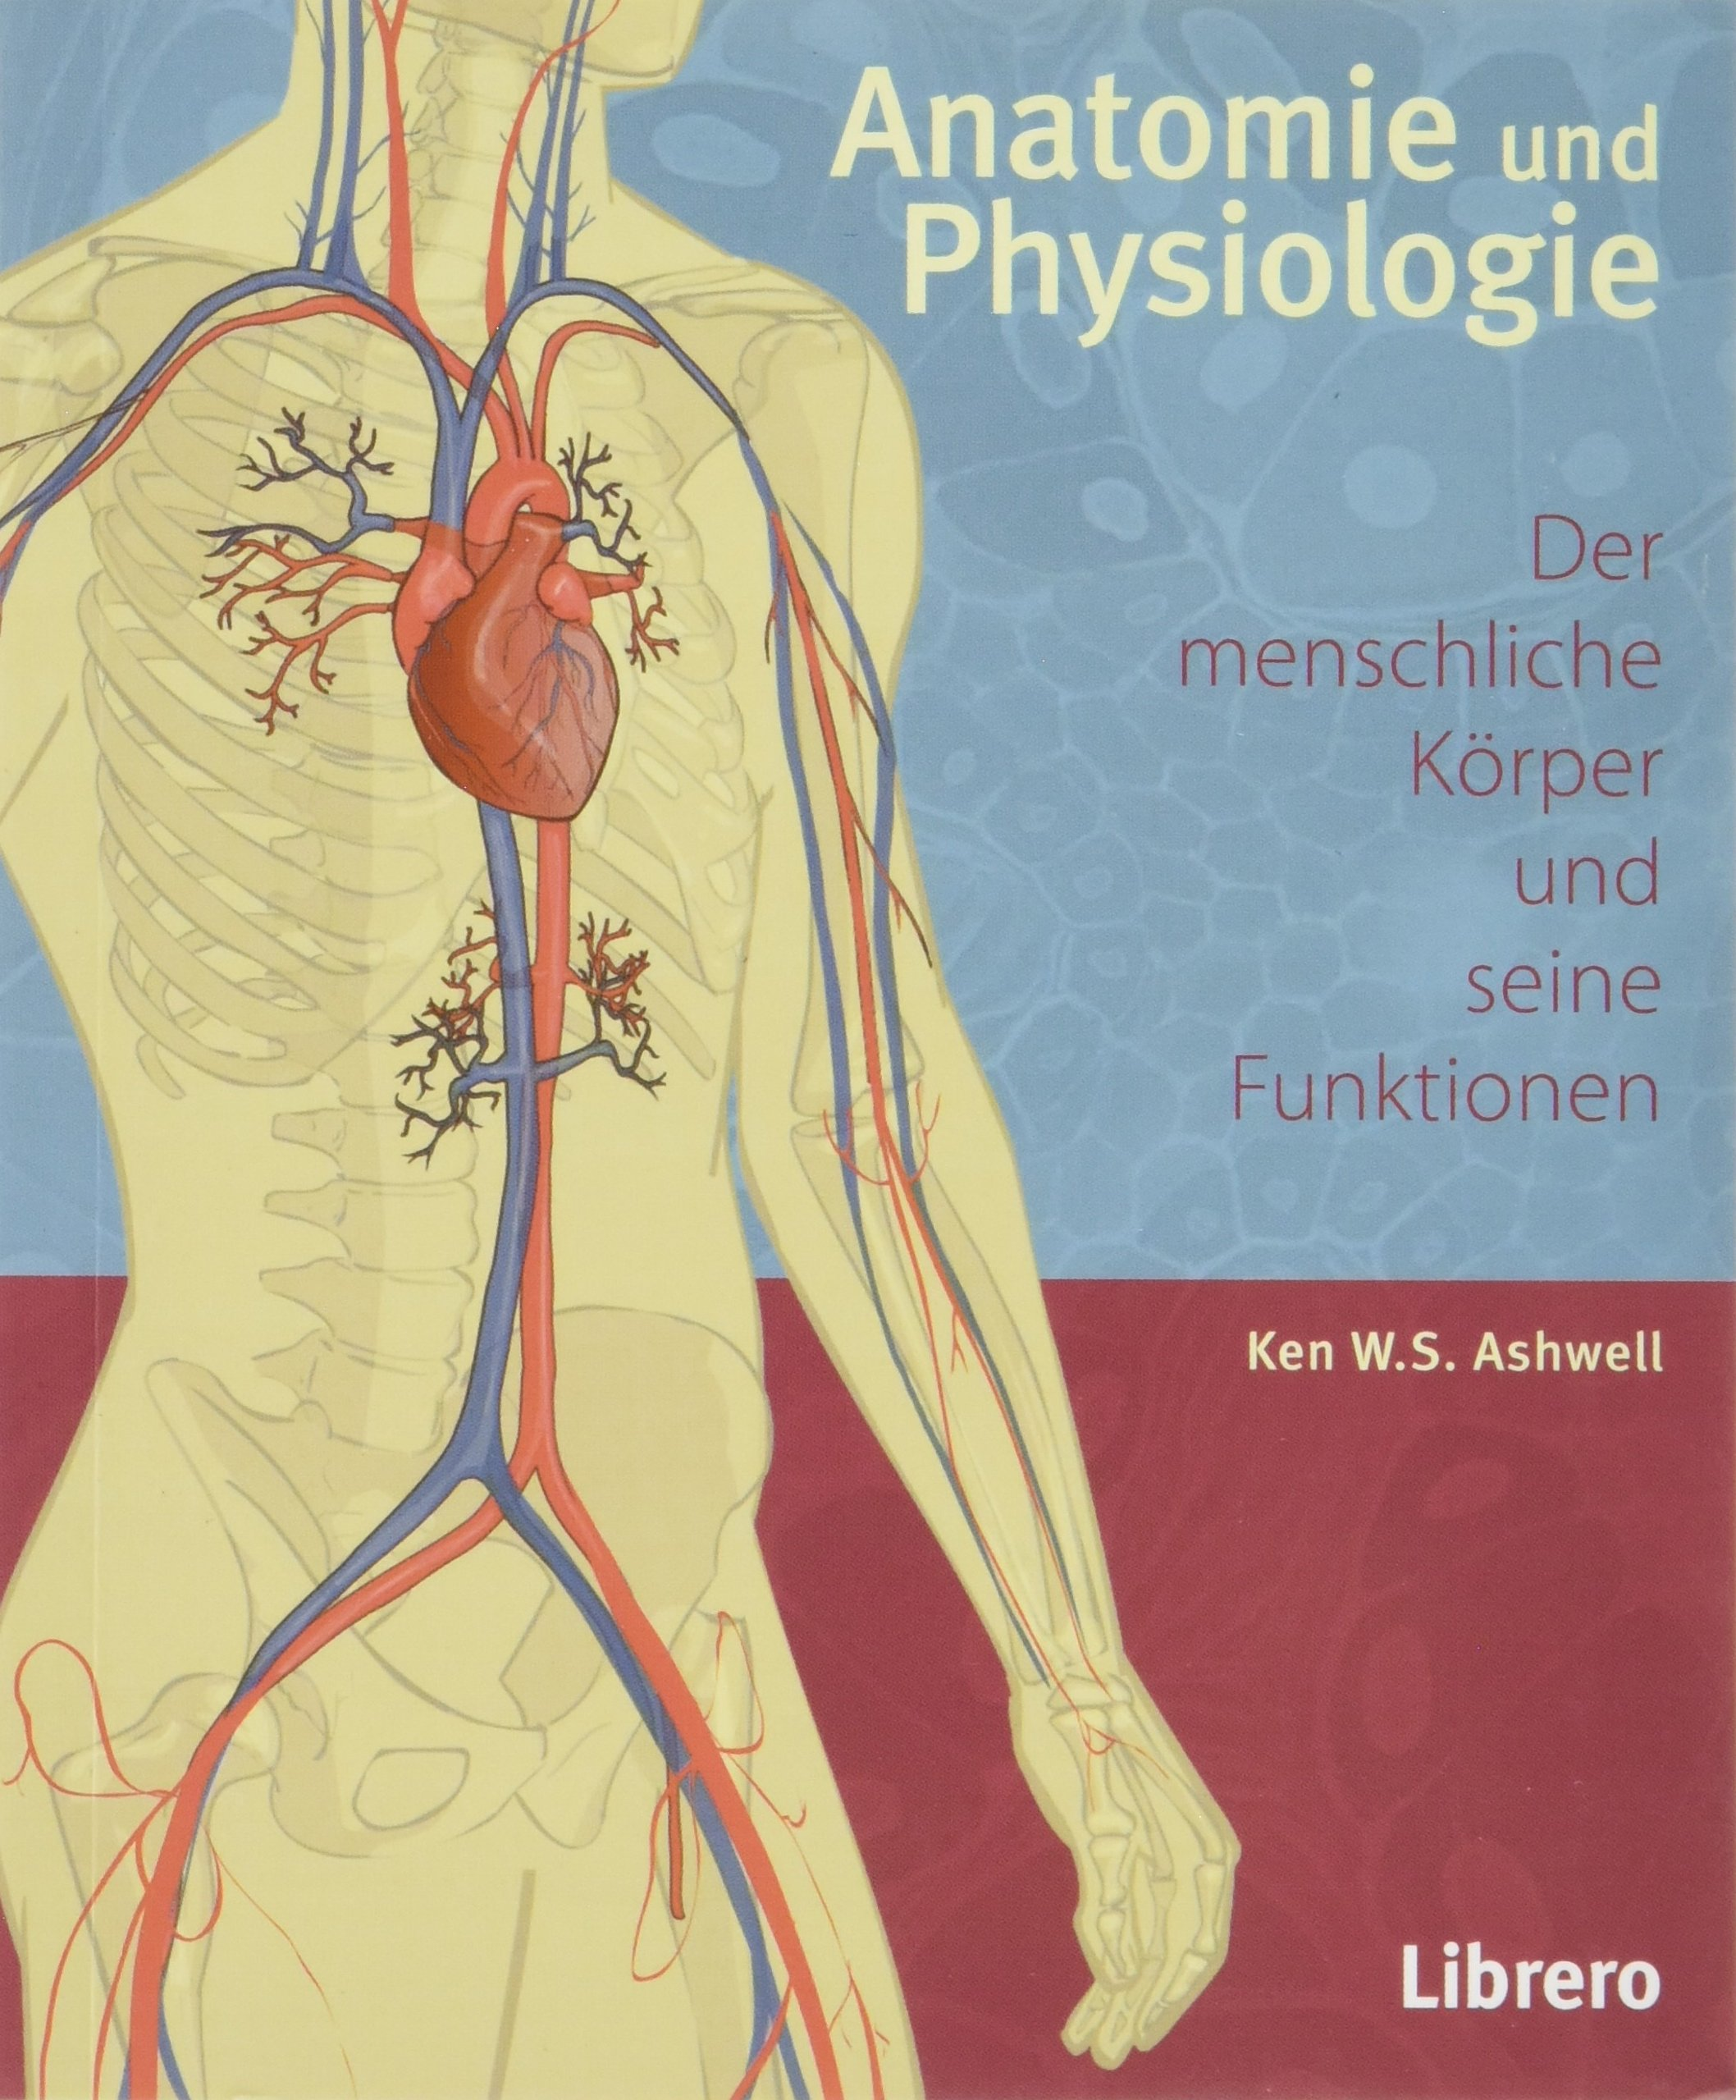 Anatomie und Physiologie: Amazon.de: Ken Ashwell: Bücher